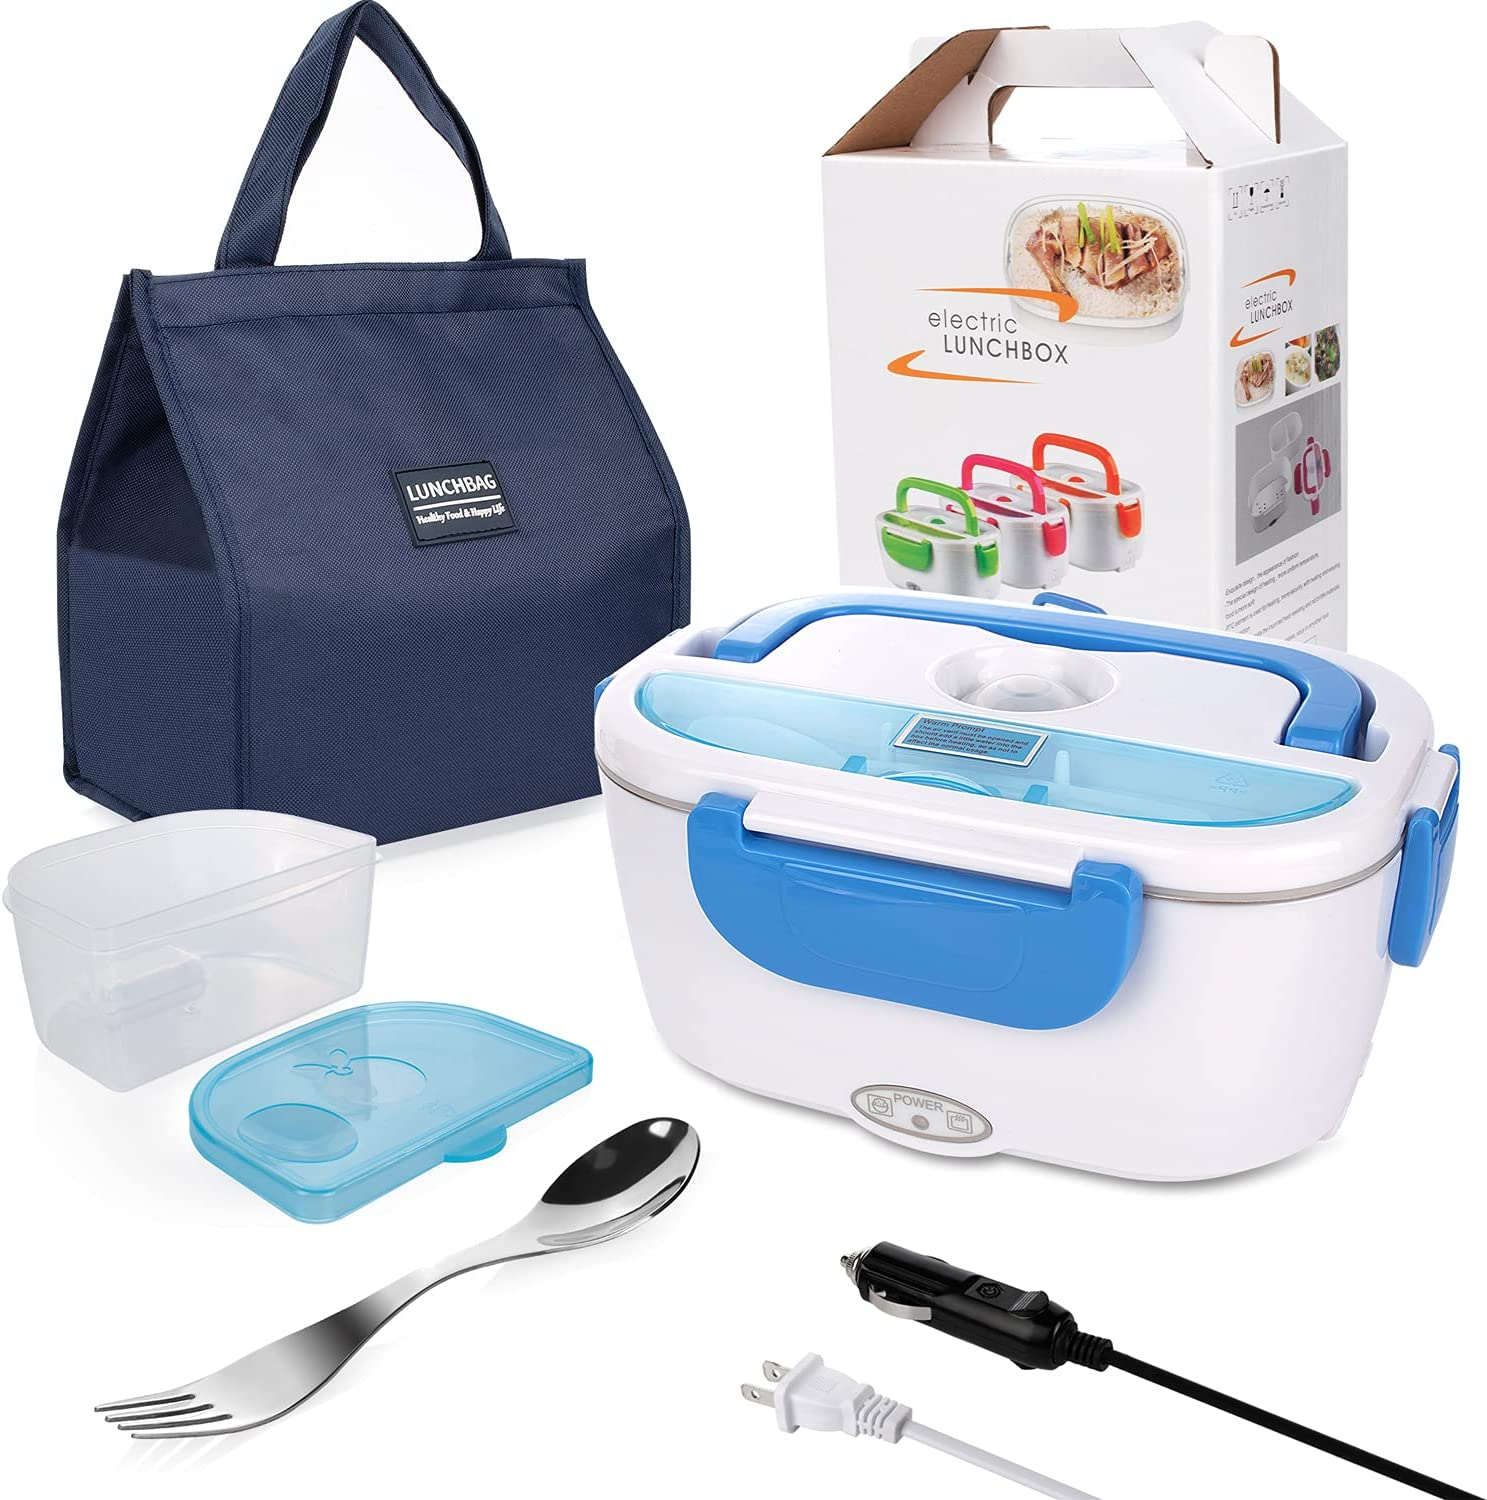 Electric Lunch Box for Car and Home 110V & 12V 40W - Removable Stainless Steel Portable Food Grade Material Warmer Heater - With Fork & Spoon & Carry Bag (Blue)